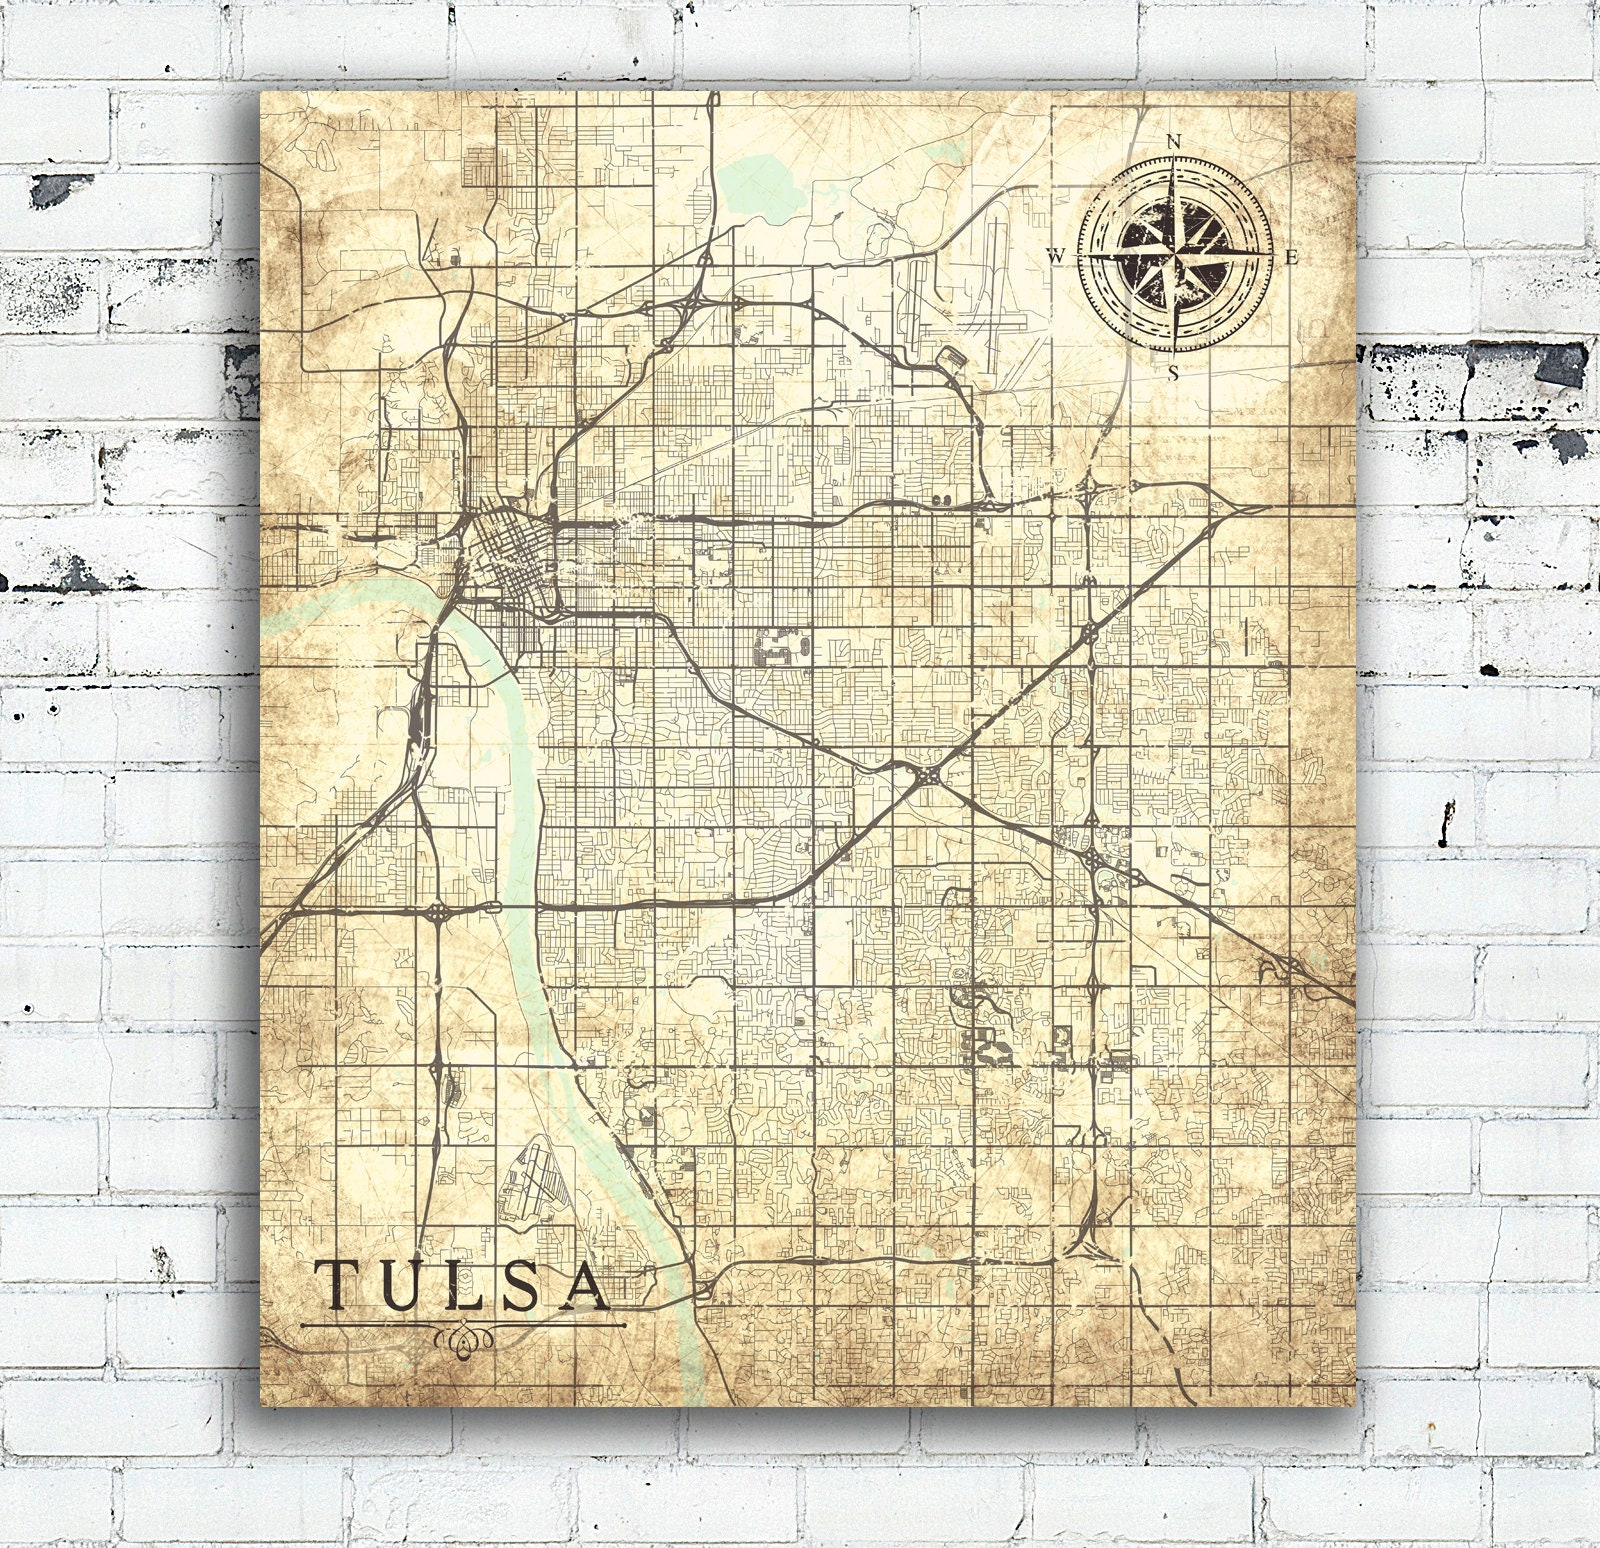 TULSA OK City Canvas Print OK Oklahoma Vintage Map Tulsa